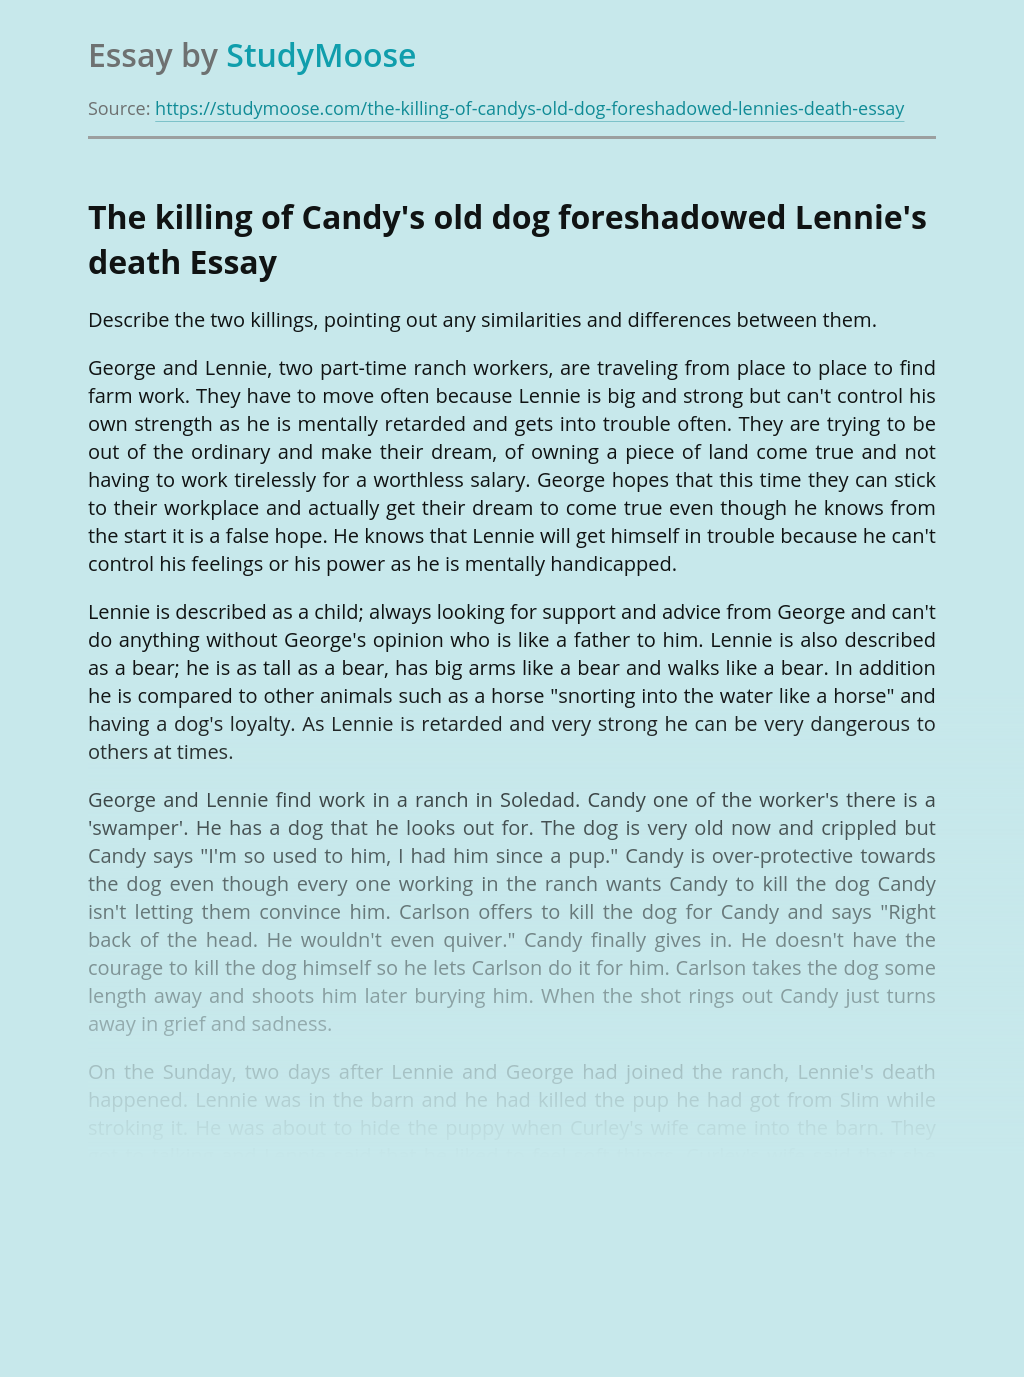 The killing of Candy's old dog foreshadowed Lennie's death